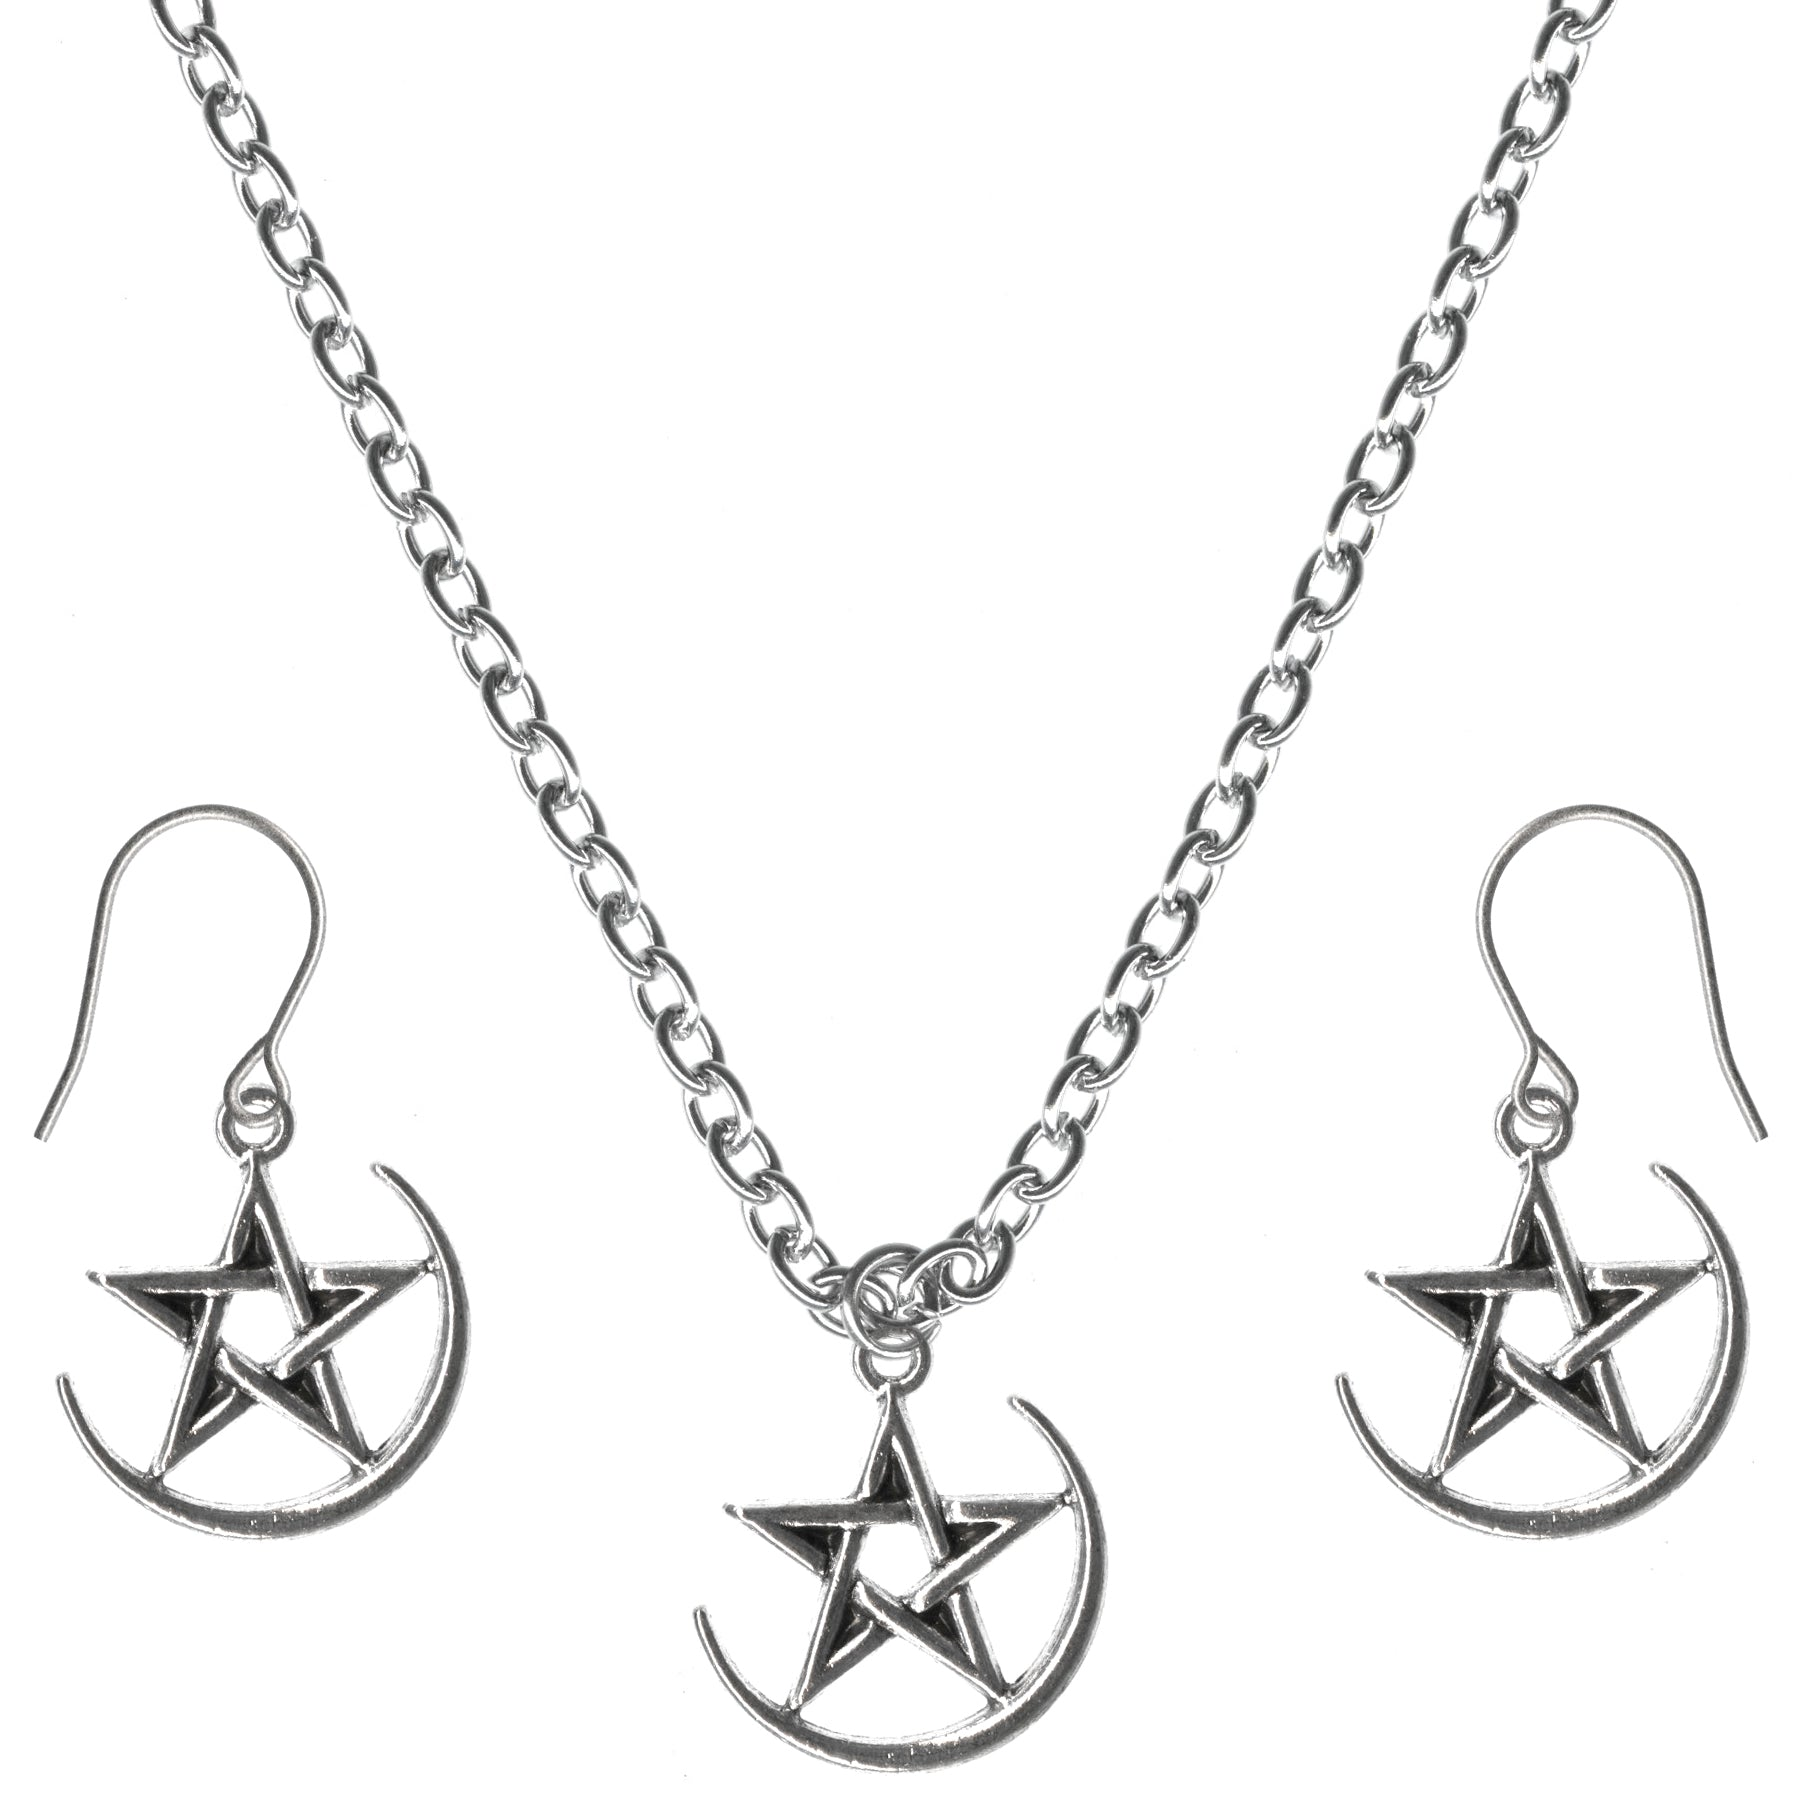 Pentacle Crescent Moon Charm Steel Chain Necklace and Hypoallergenic Titanium Earrings Set